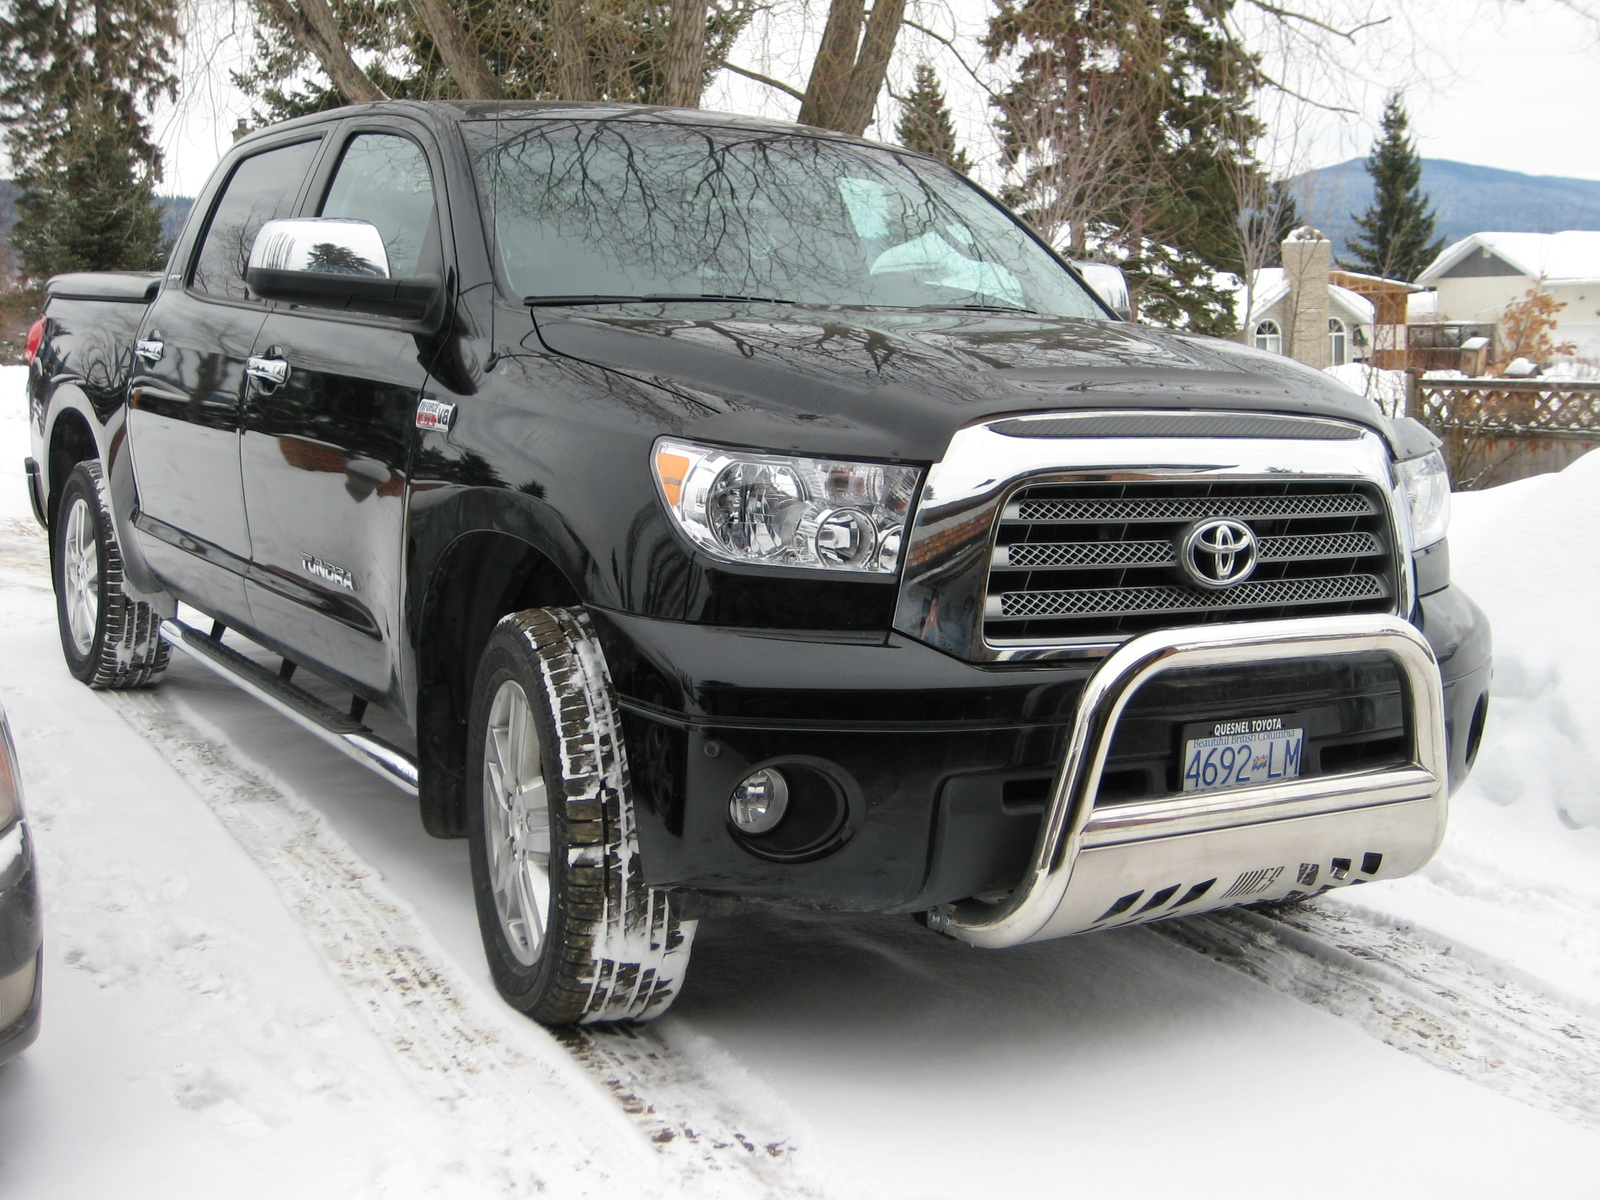 toyota tundra limited picture 15 reviews news specs buy car. Black Bedroom Furniture Sets. Home Design Ideas